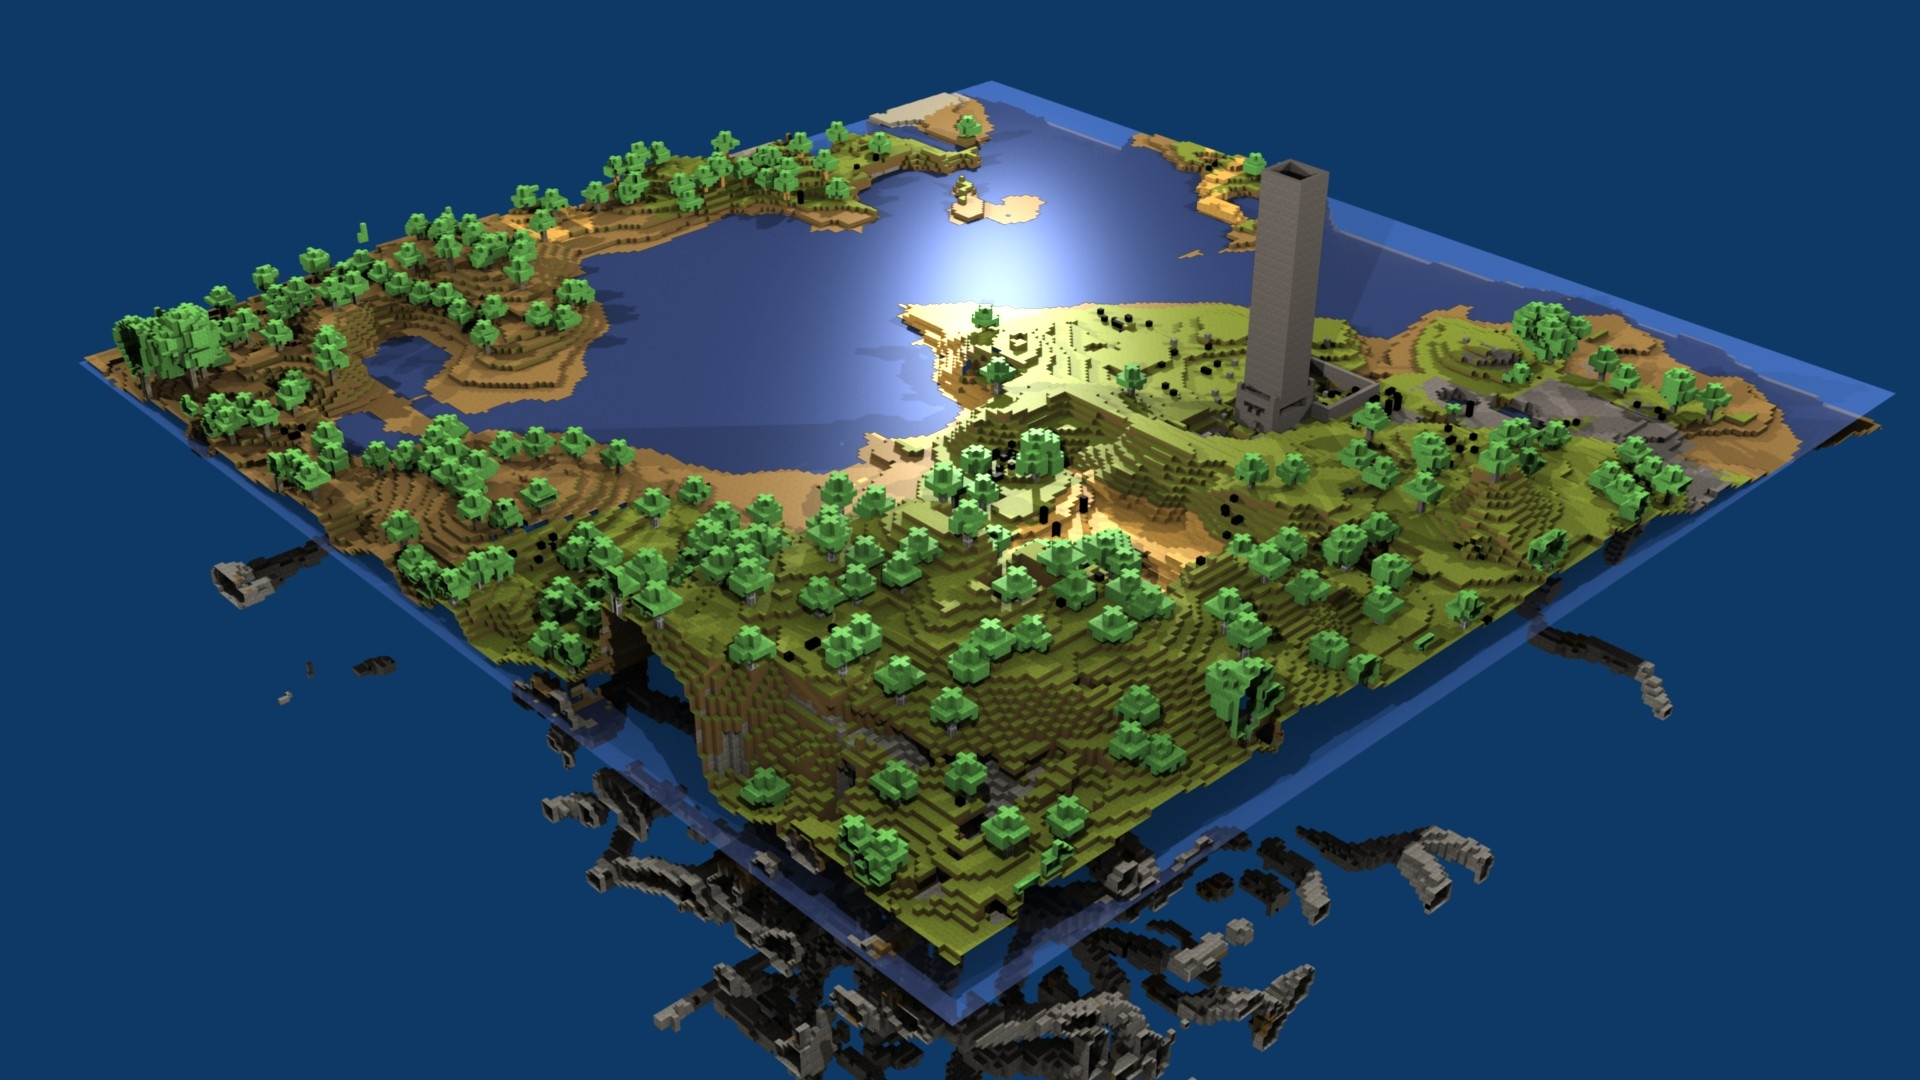 Must see Wallpaper Minecraft 1080p - minecraft_world_map_water_life_blocks_2227_1920x1080  HD_302281.jpg